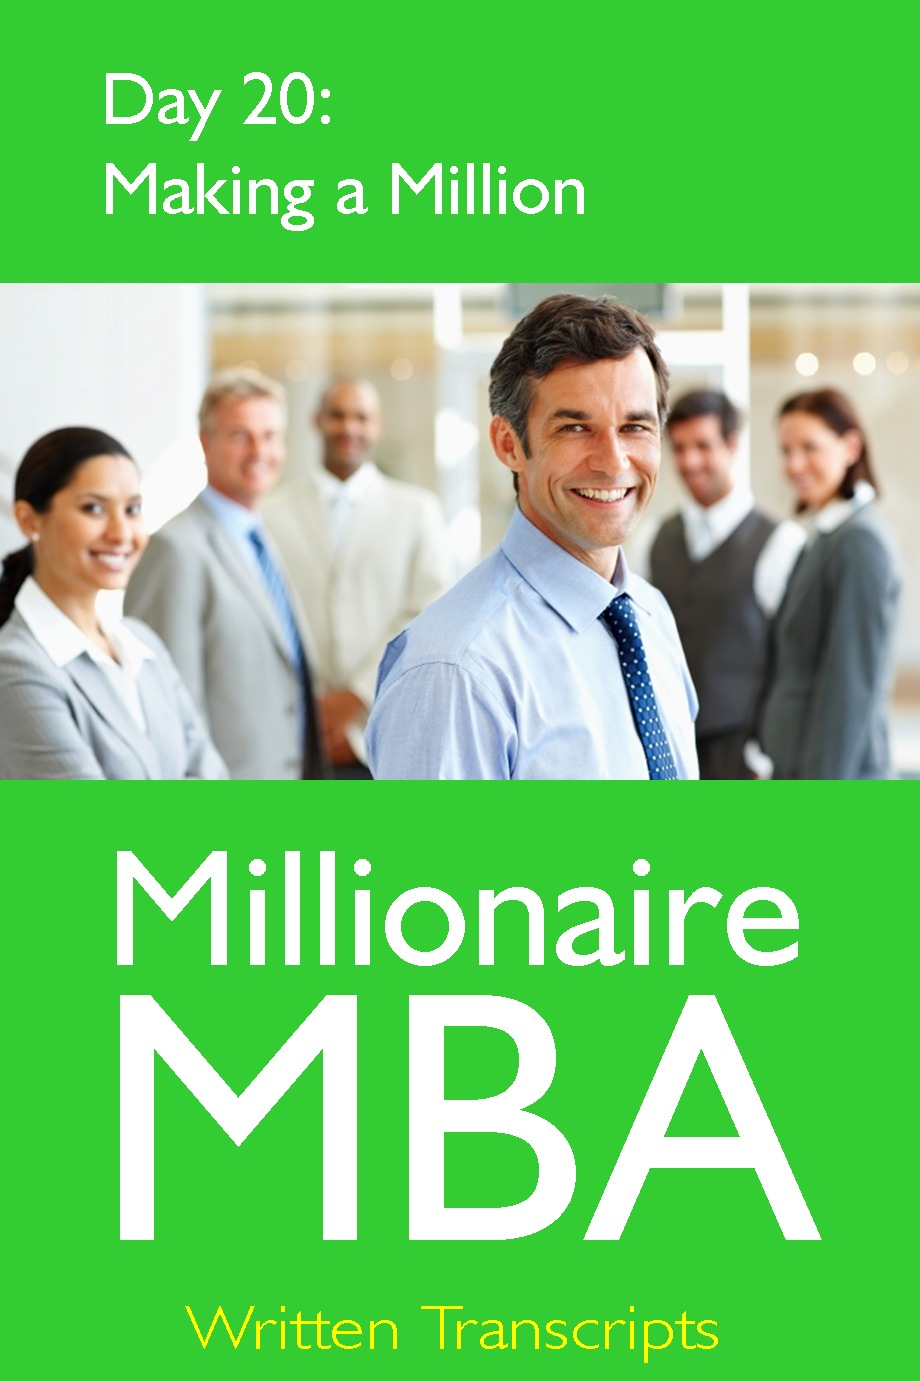 Millionaire MBA Day 20: Making a Million